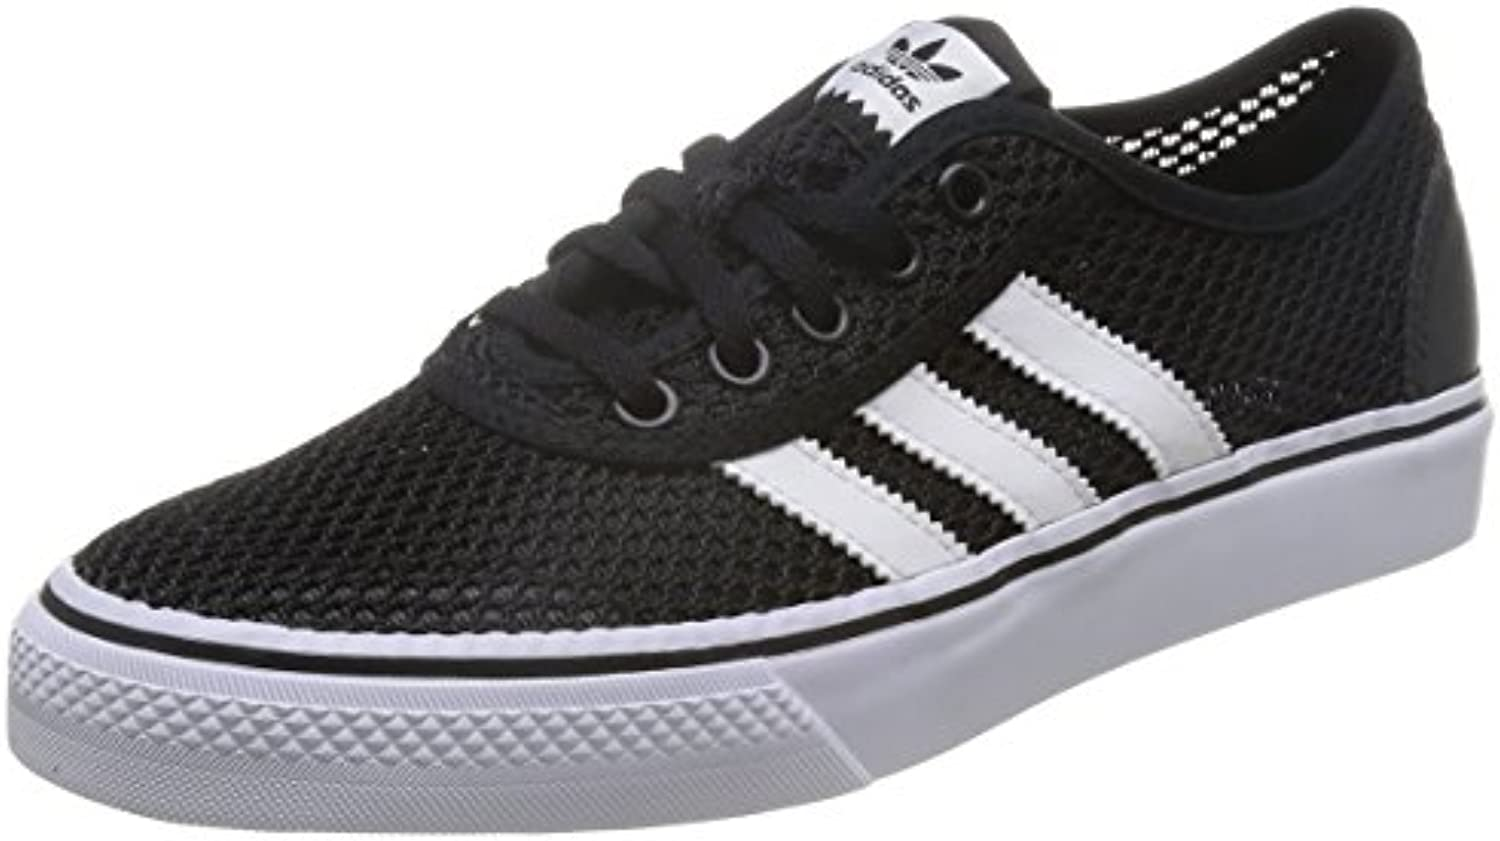 adidas Herren Adiease Clima Low Top  Schwarz (Core Black/FTWR White/Core Black)  46 2/3 EU